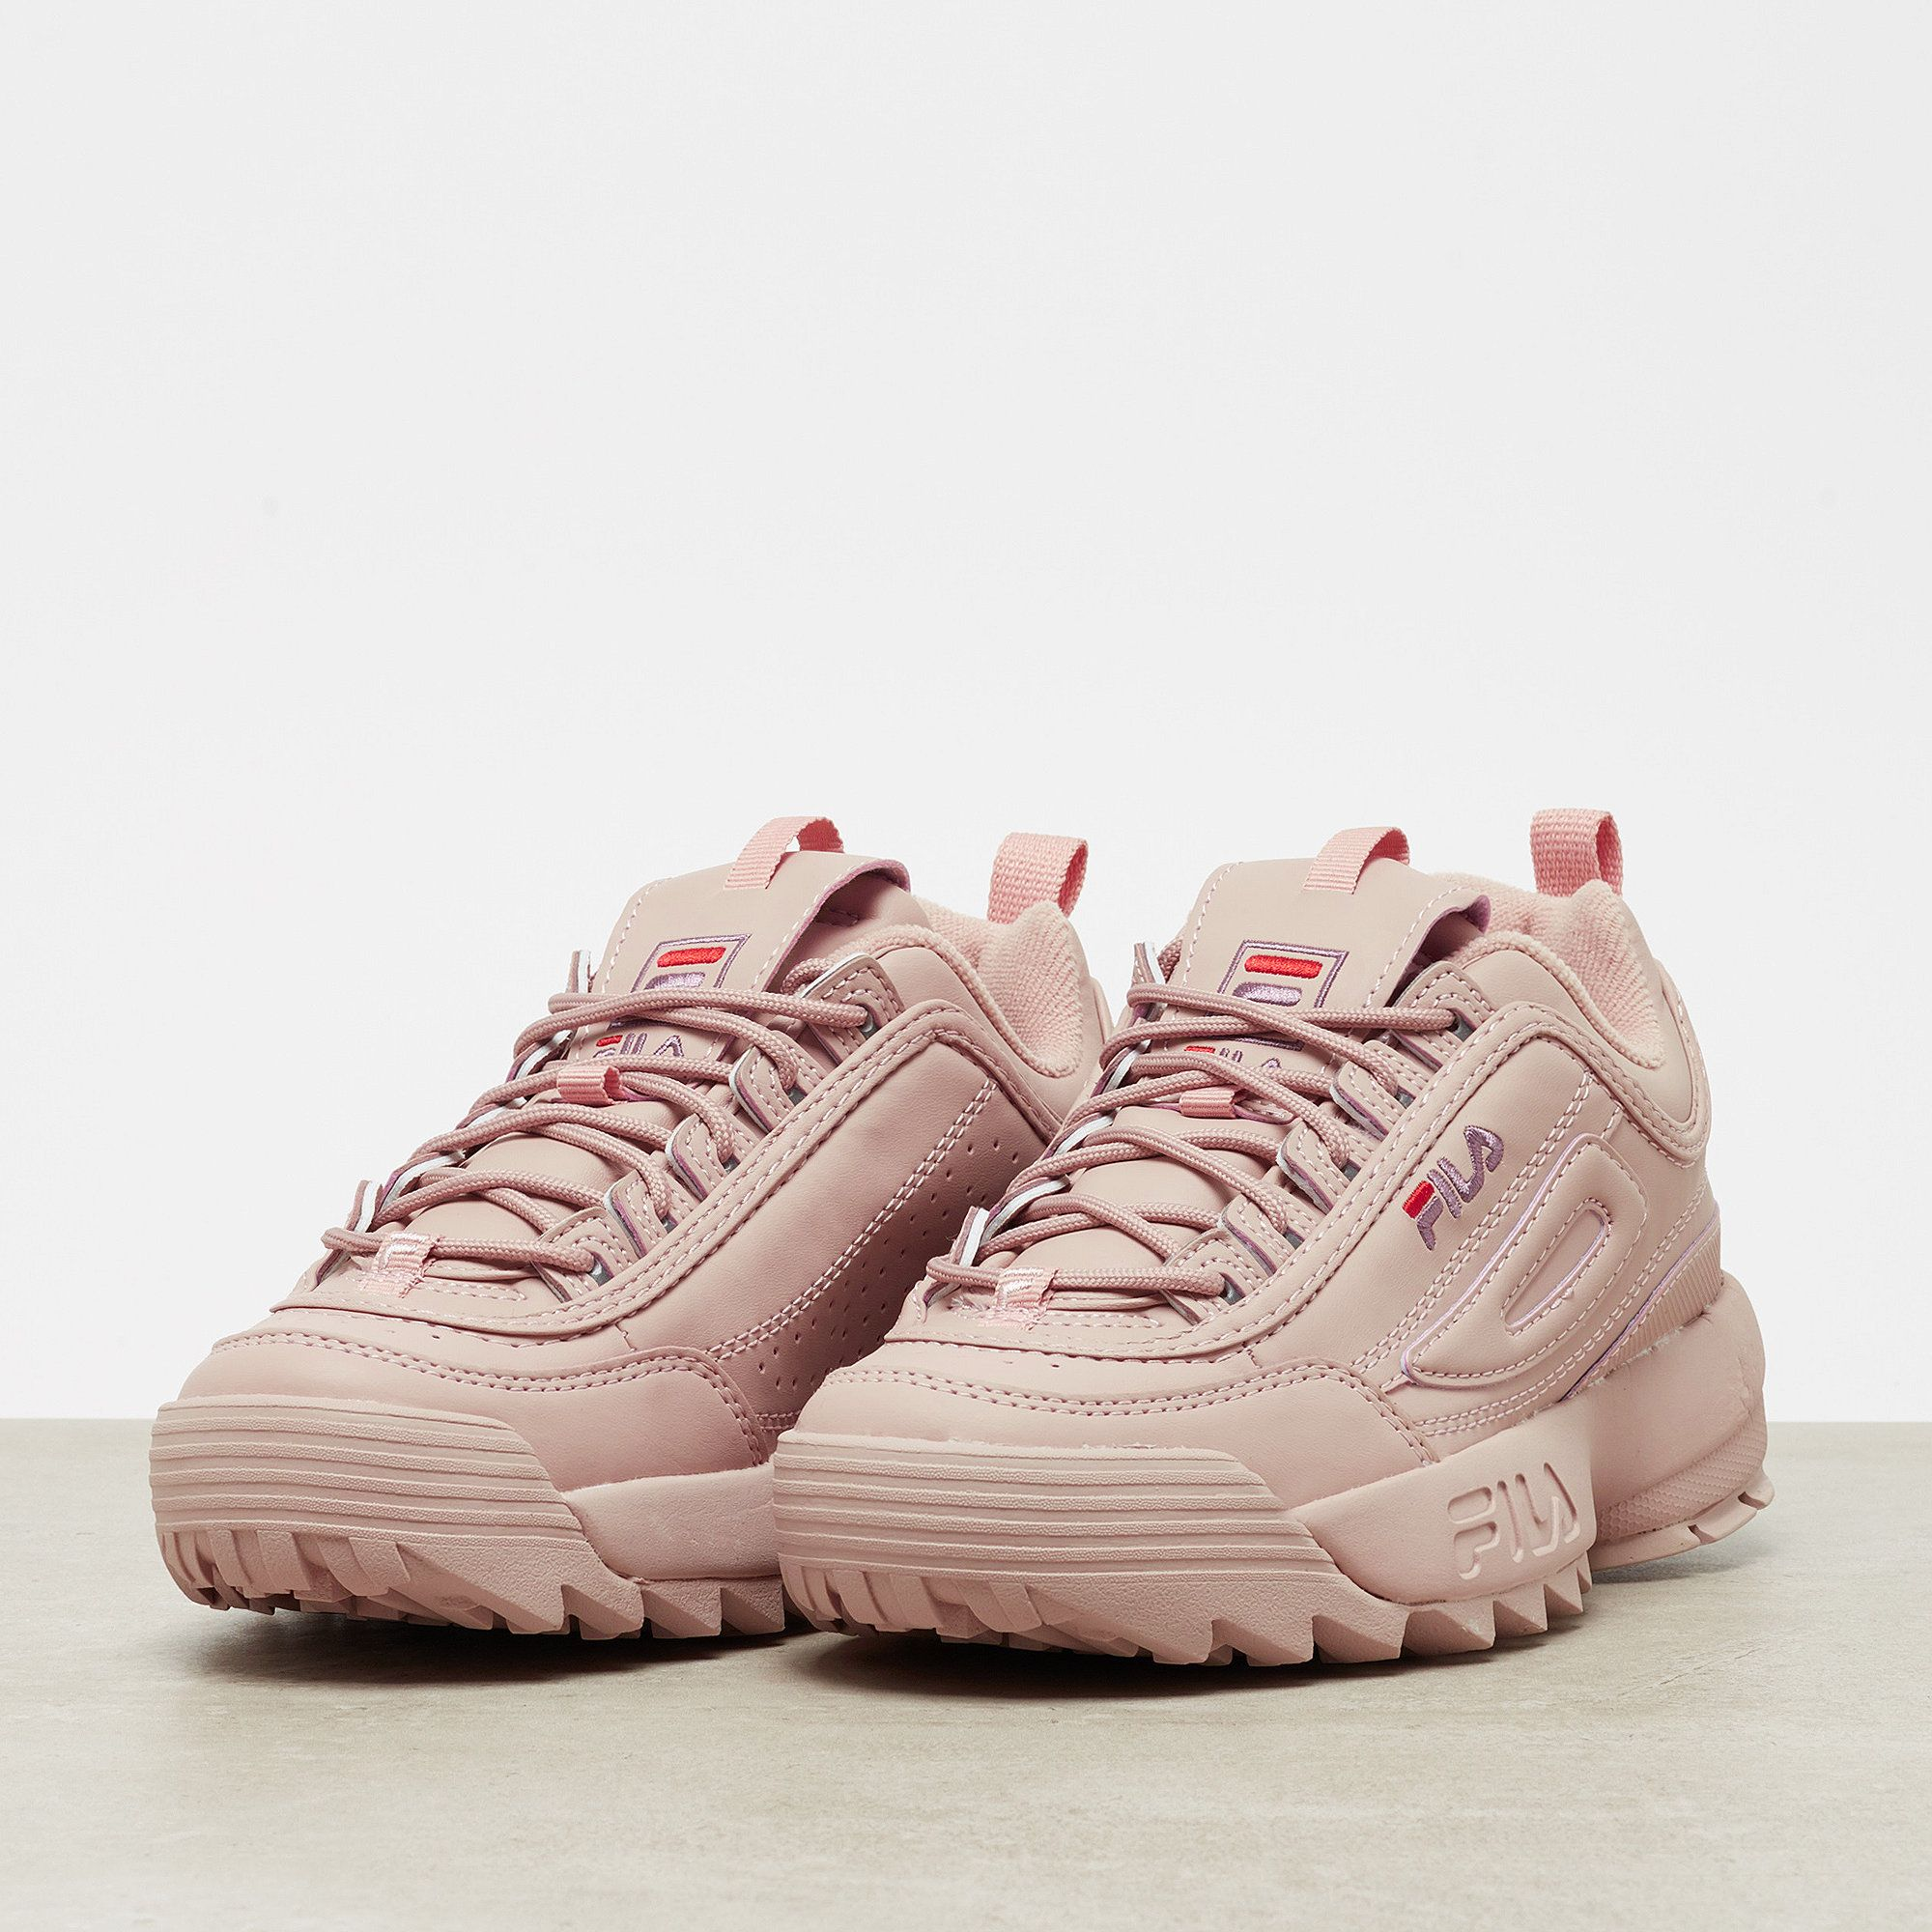 Fila Disruptor Low woodrose | Trainers in 2019 | Fila schuhe, Schuhe ...